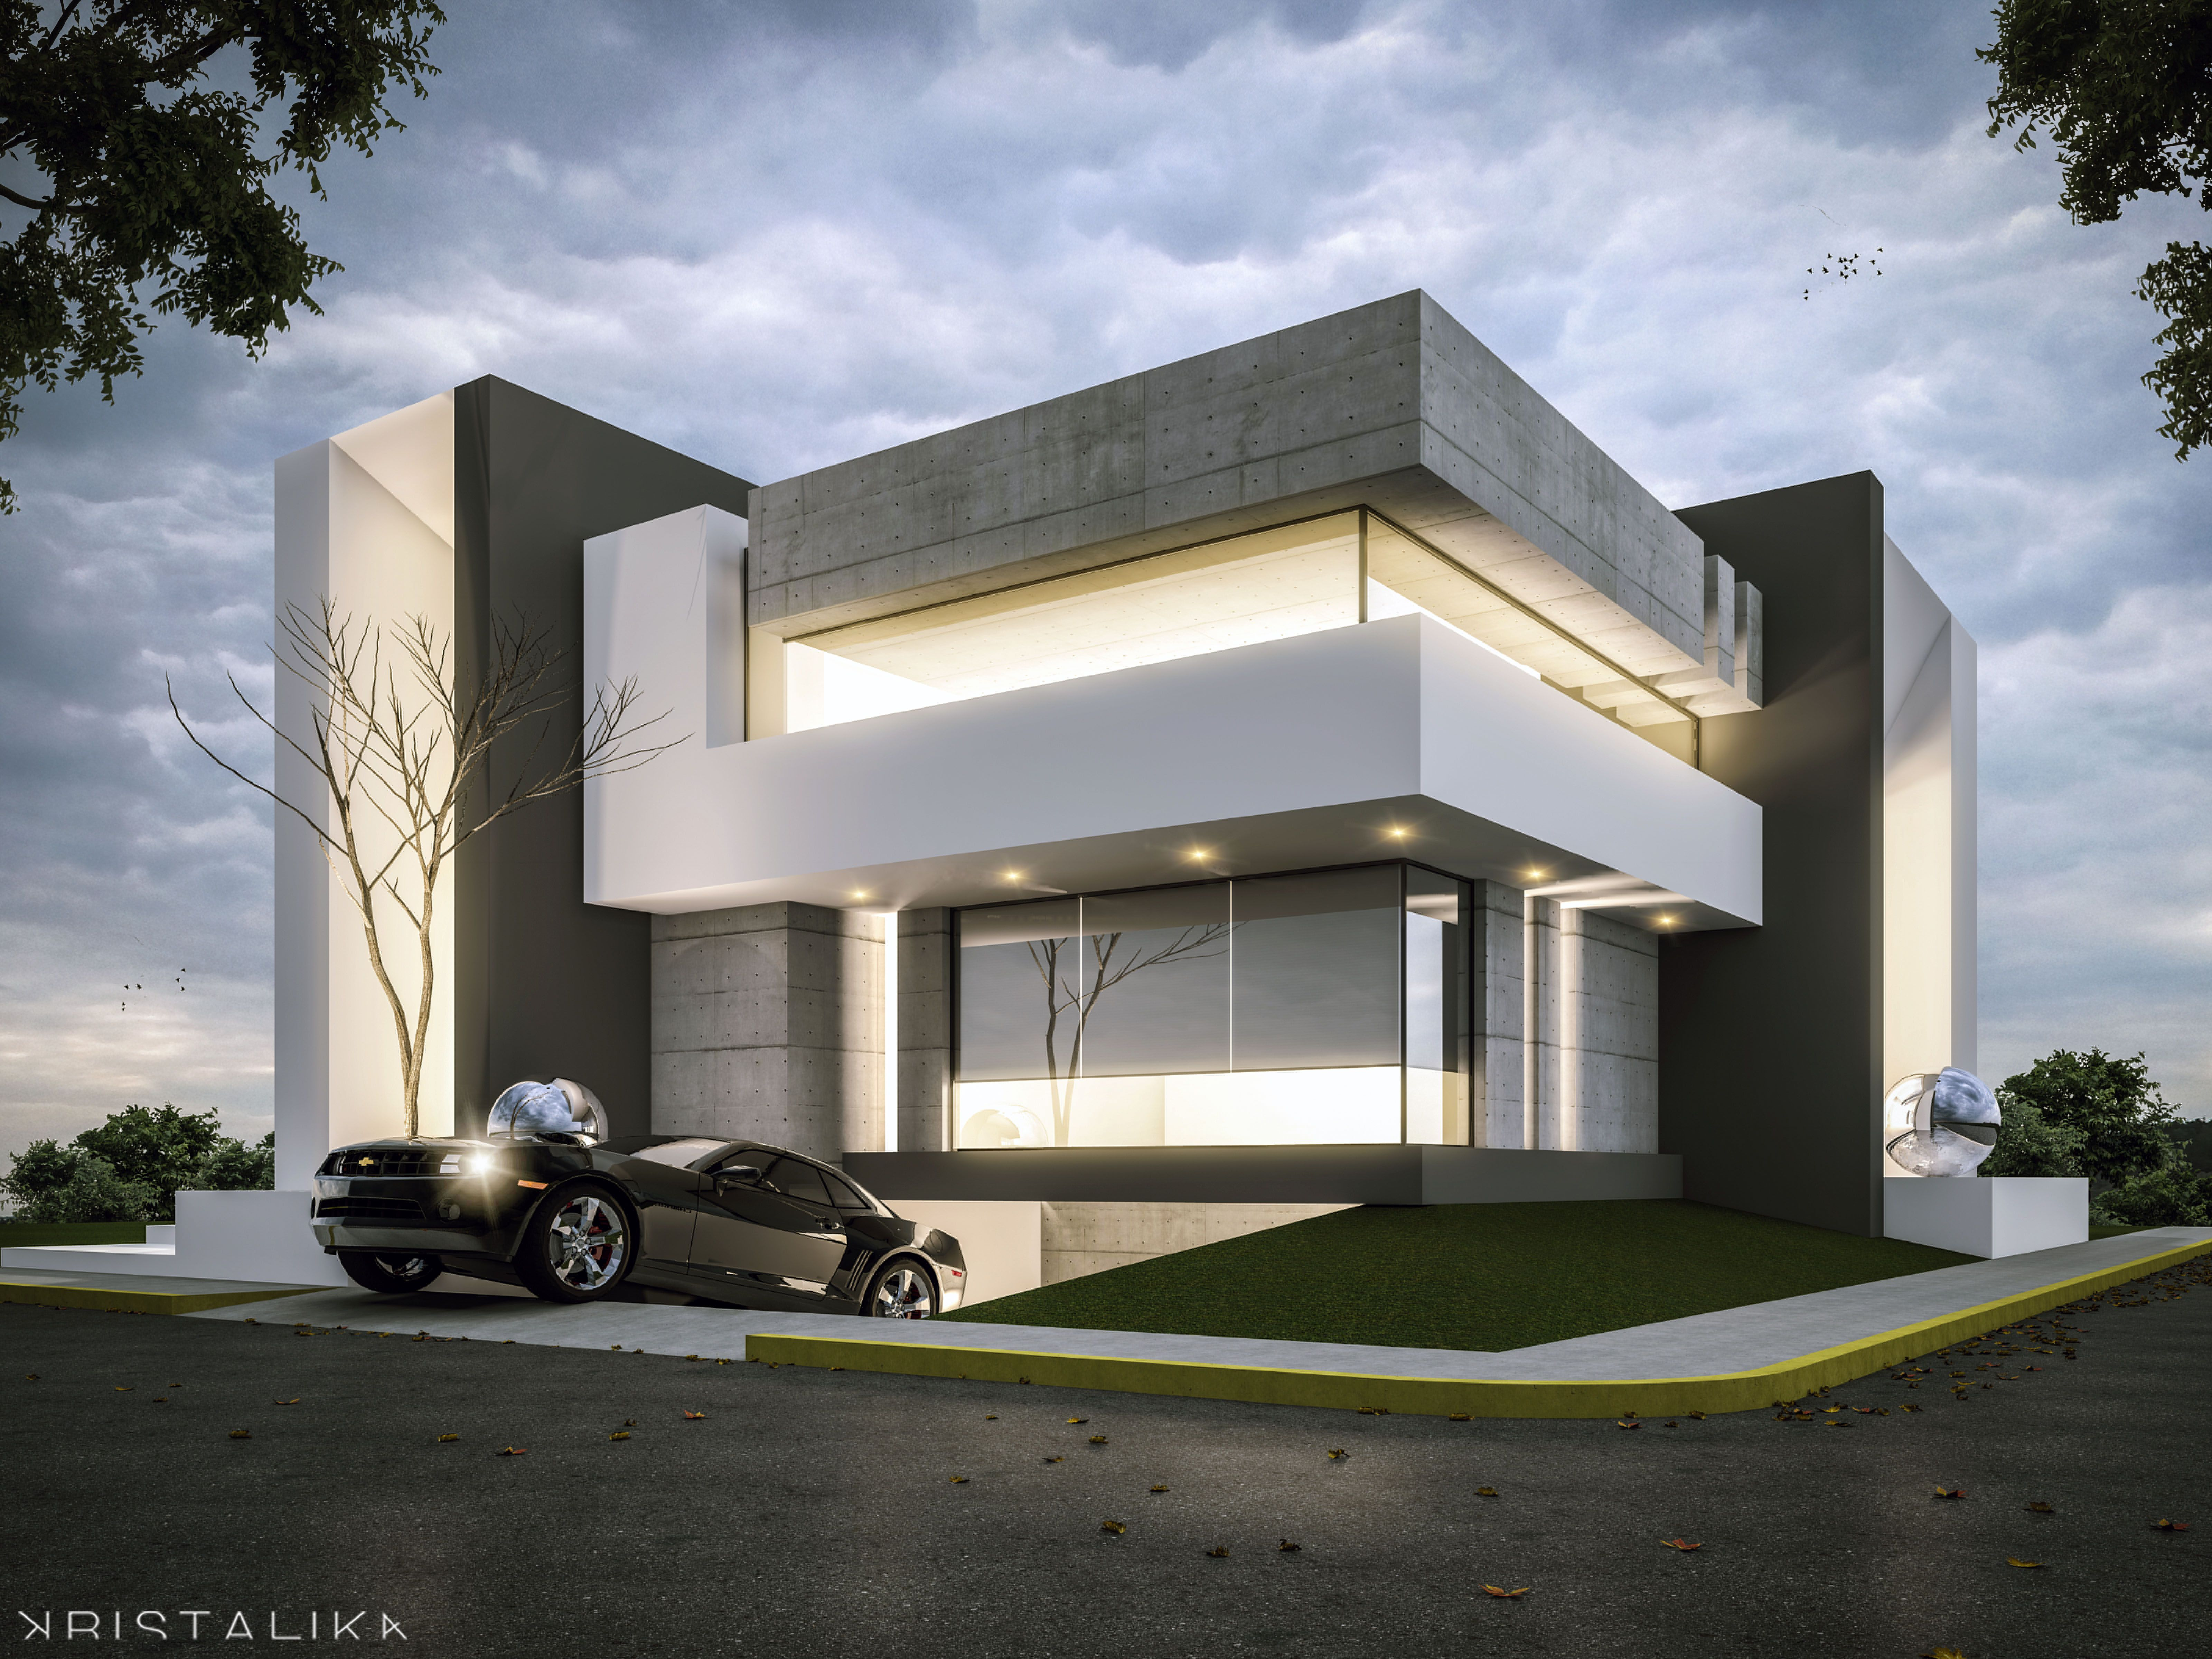 Jc house contemporary house design architectural Drawing modern houses